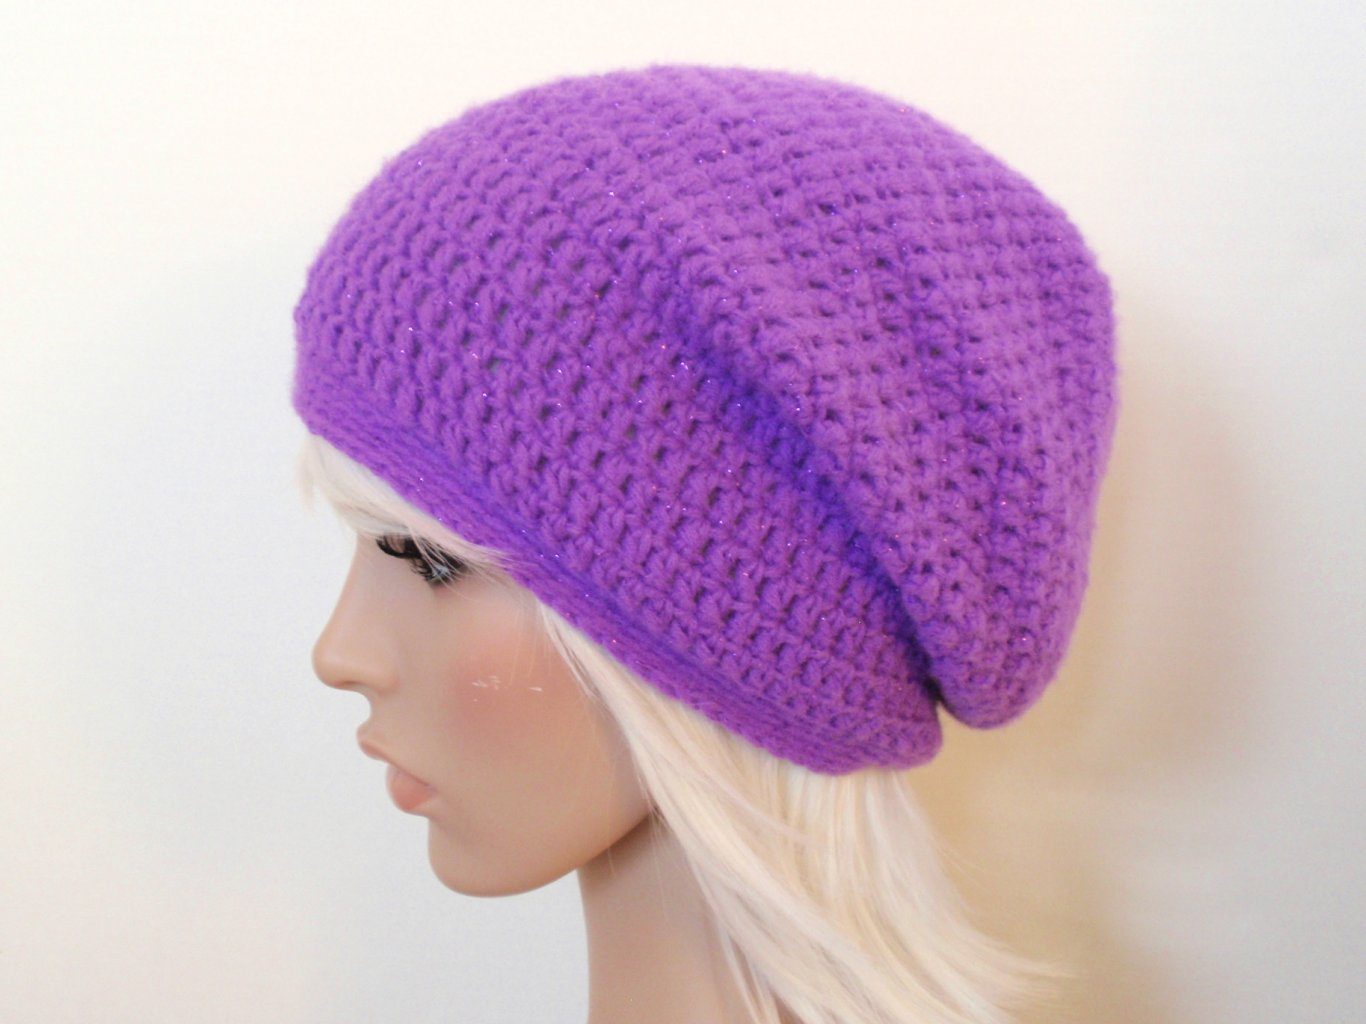 Crochet Pattern Hat Beanie : Beanie Crochet Patterns - My Patterns